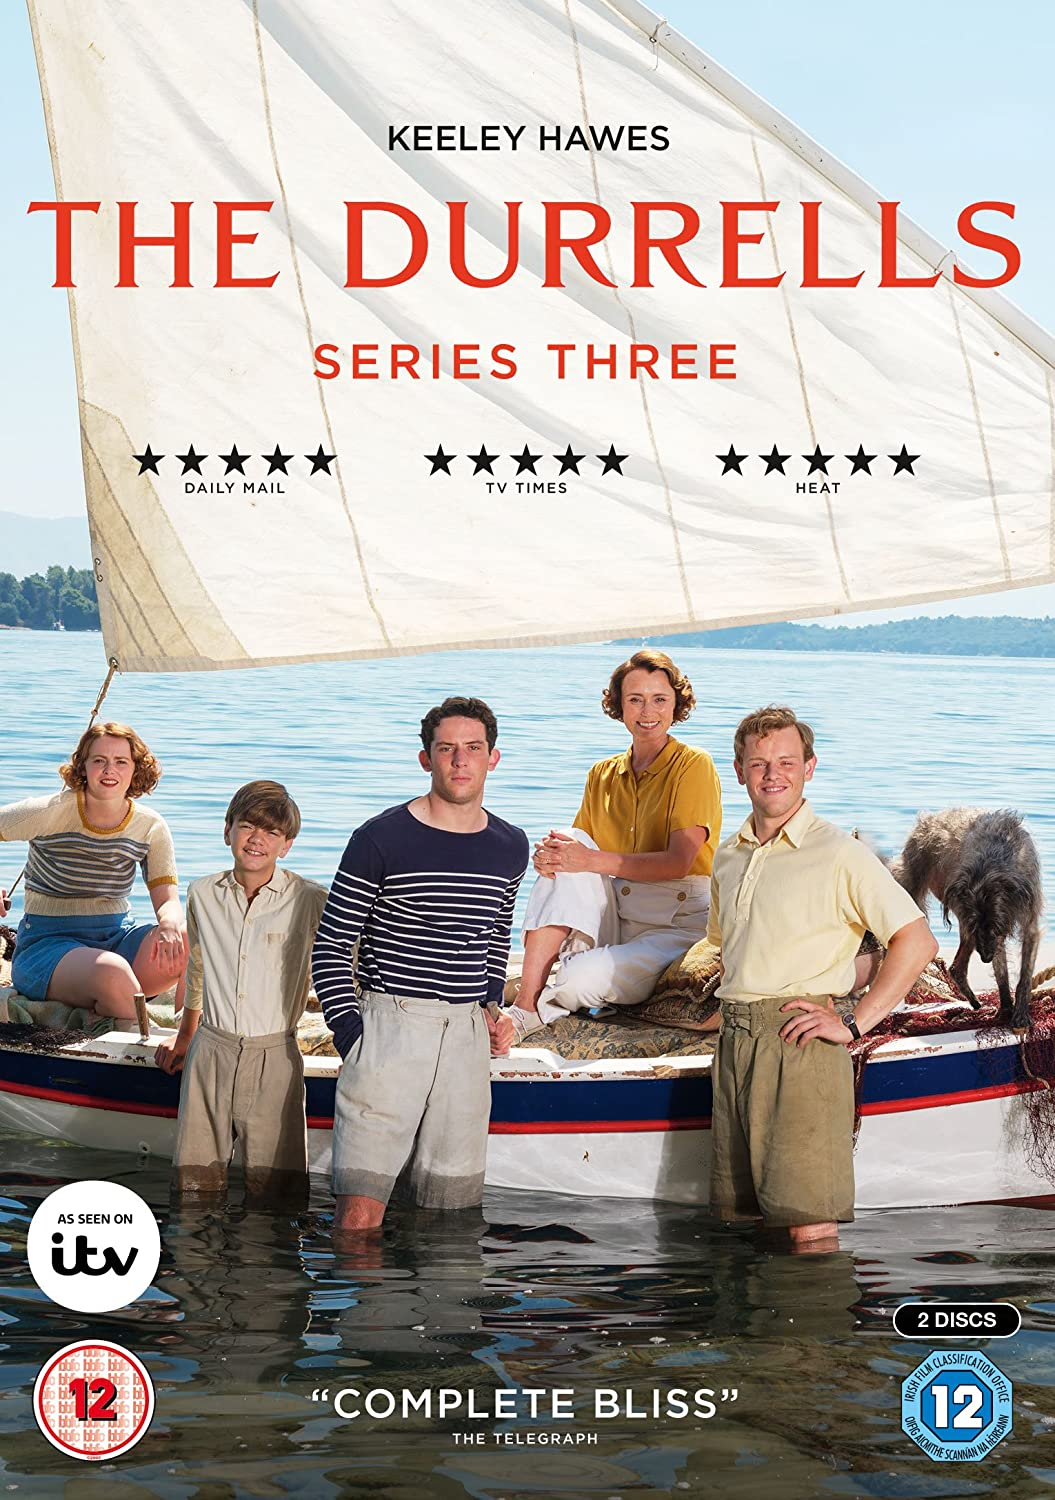 The Durrells: Series 3